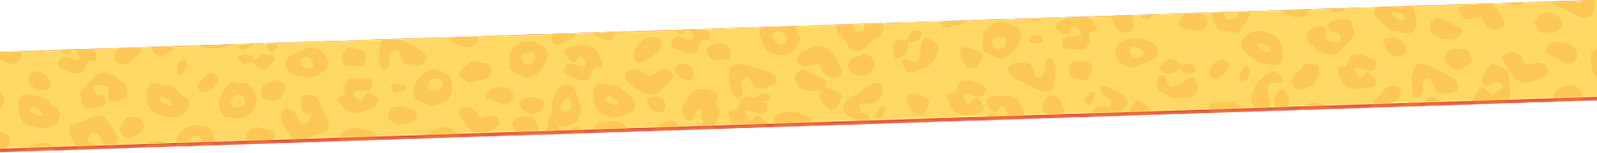 Banner clean.png